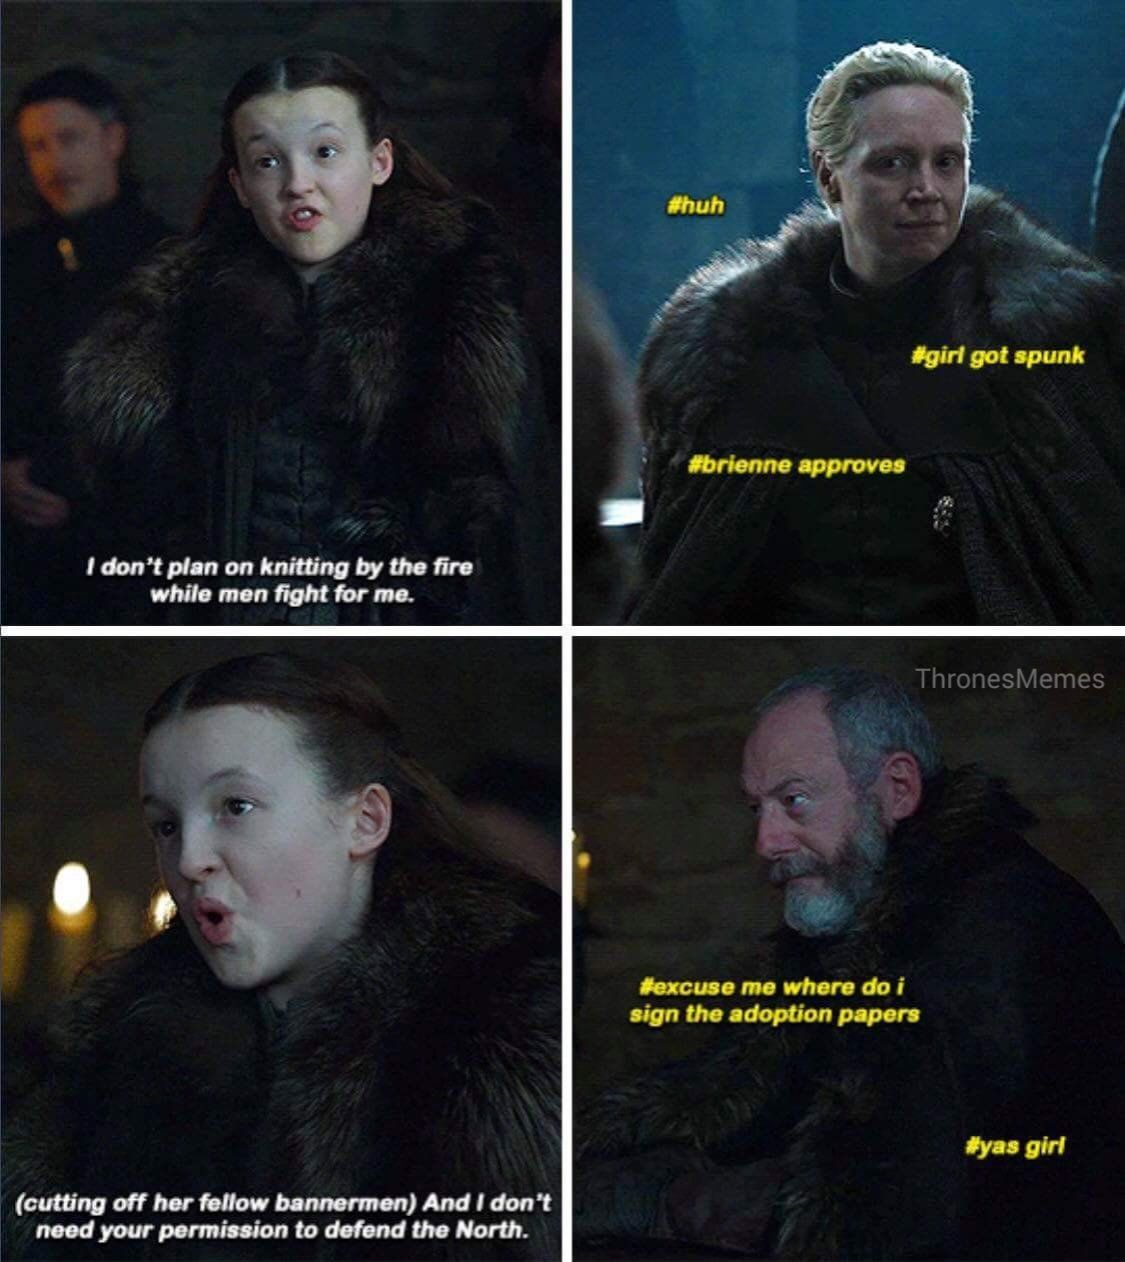 Game Of Thrones Memes On Twitter Game Of Thrones Funny Game Of Thrones Game Of Thrones Quotes